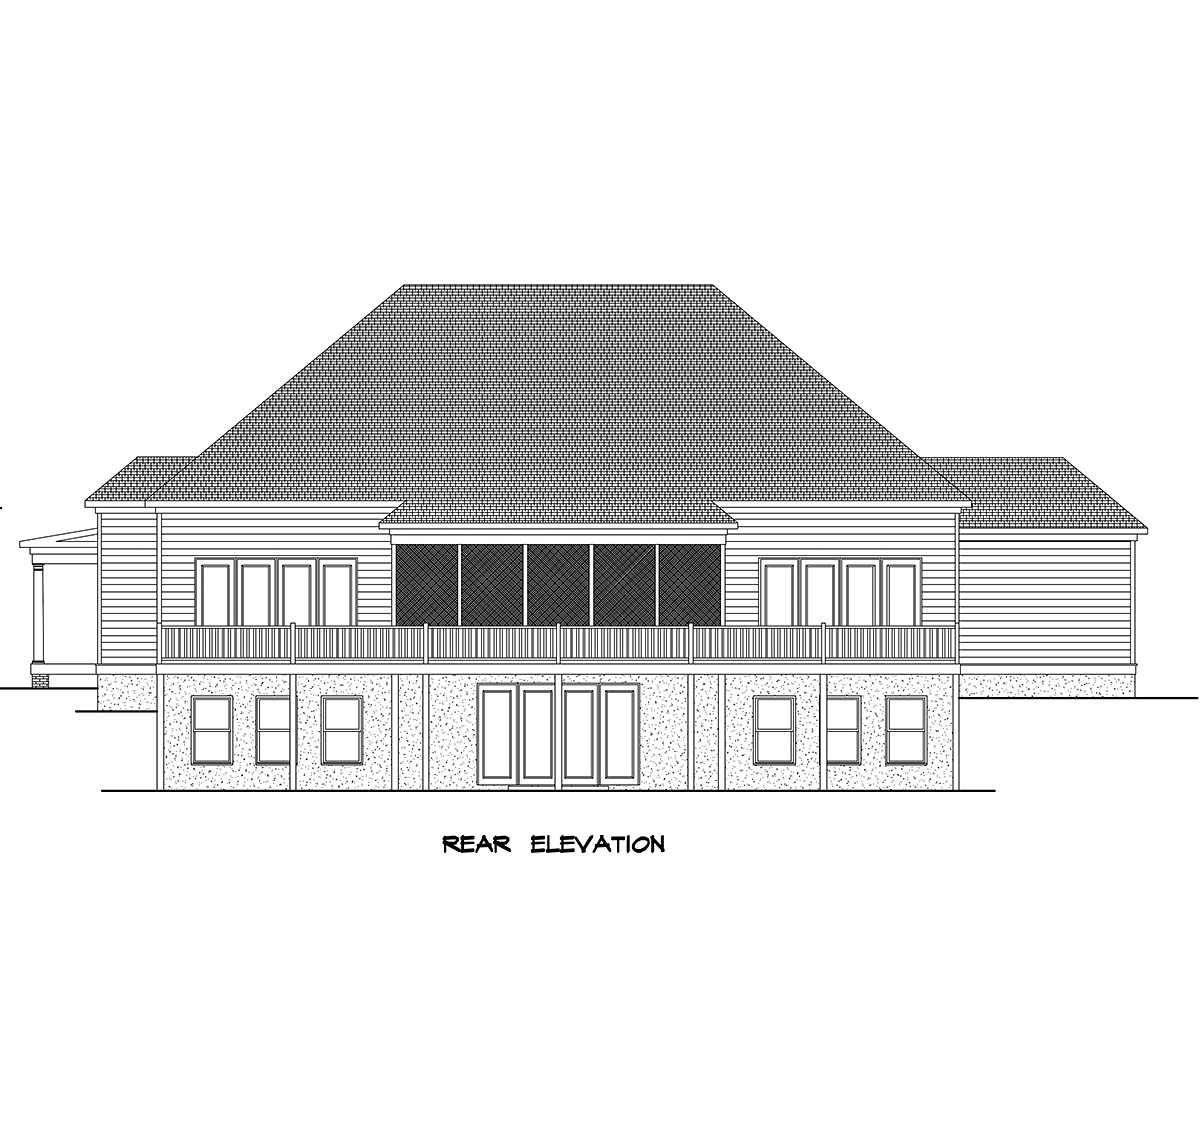 Farmhouse House Plan 60076 with 4 Beds, 4 Baths, 3 Car Garage Rear Elevation